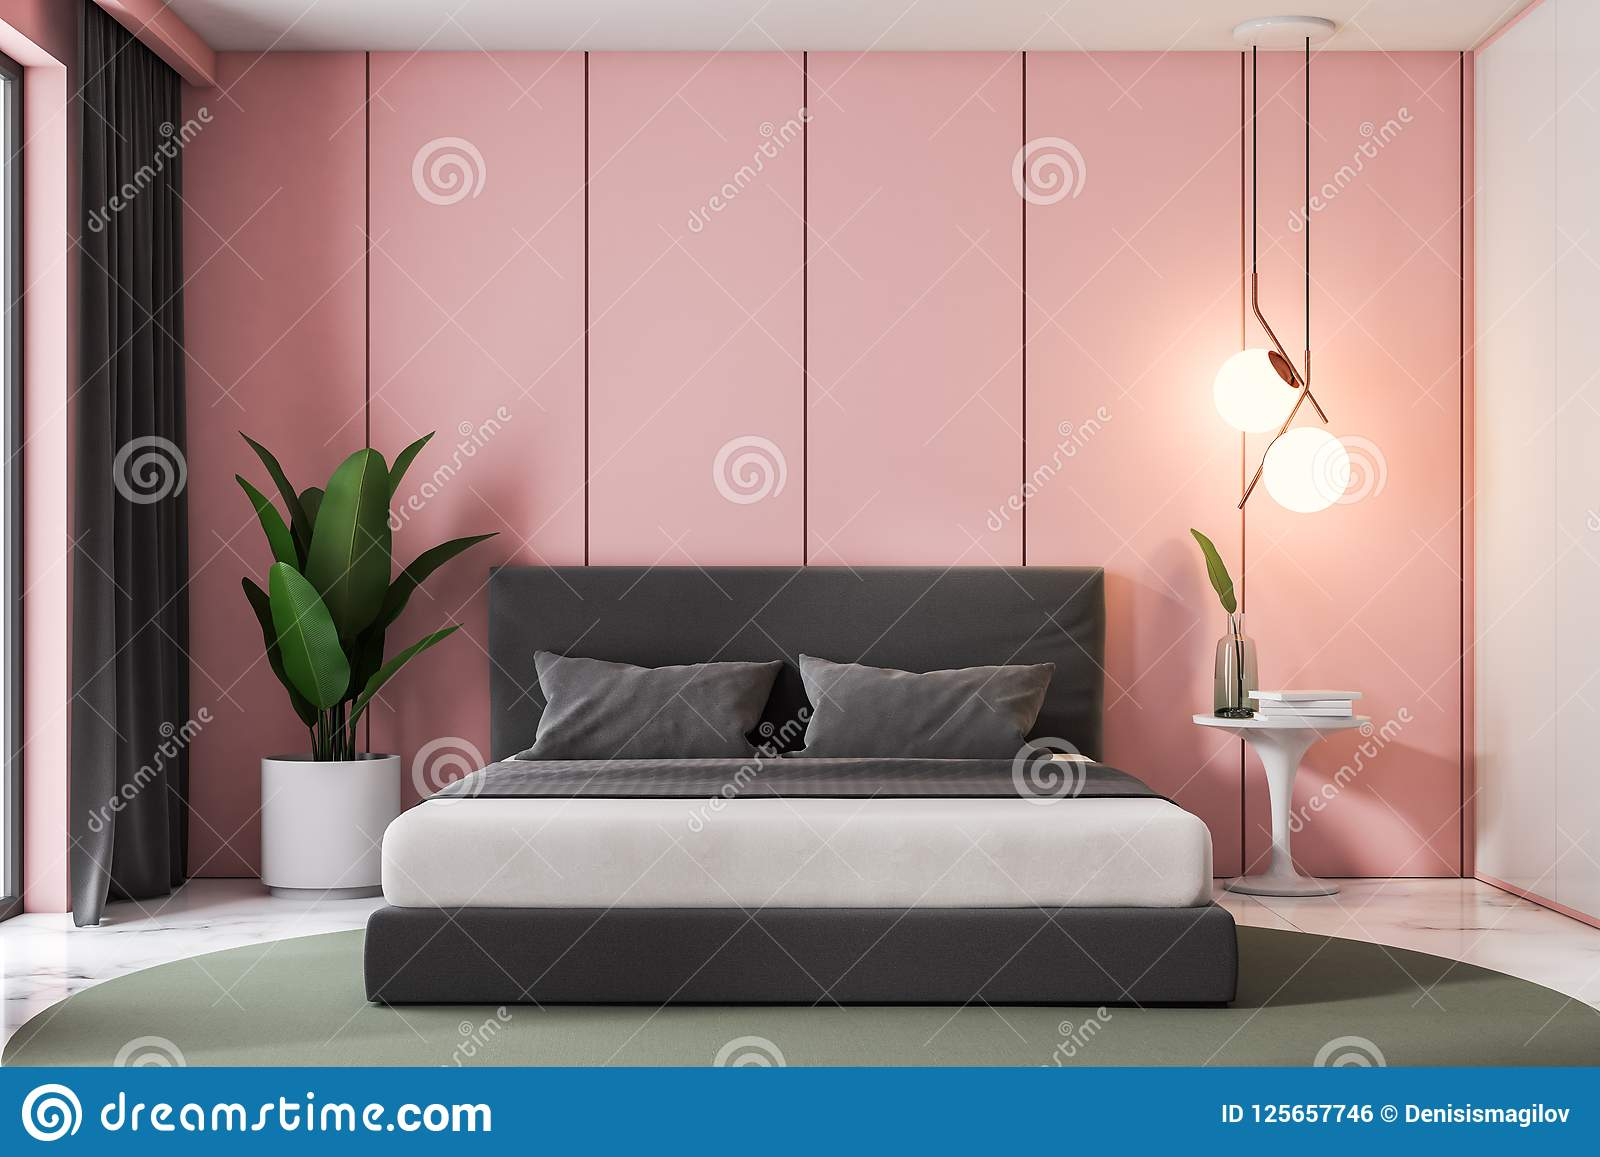 pink bedroom interior double bed stock illustration illustration rh dreamstime com